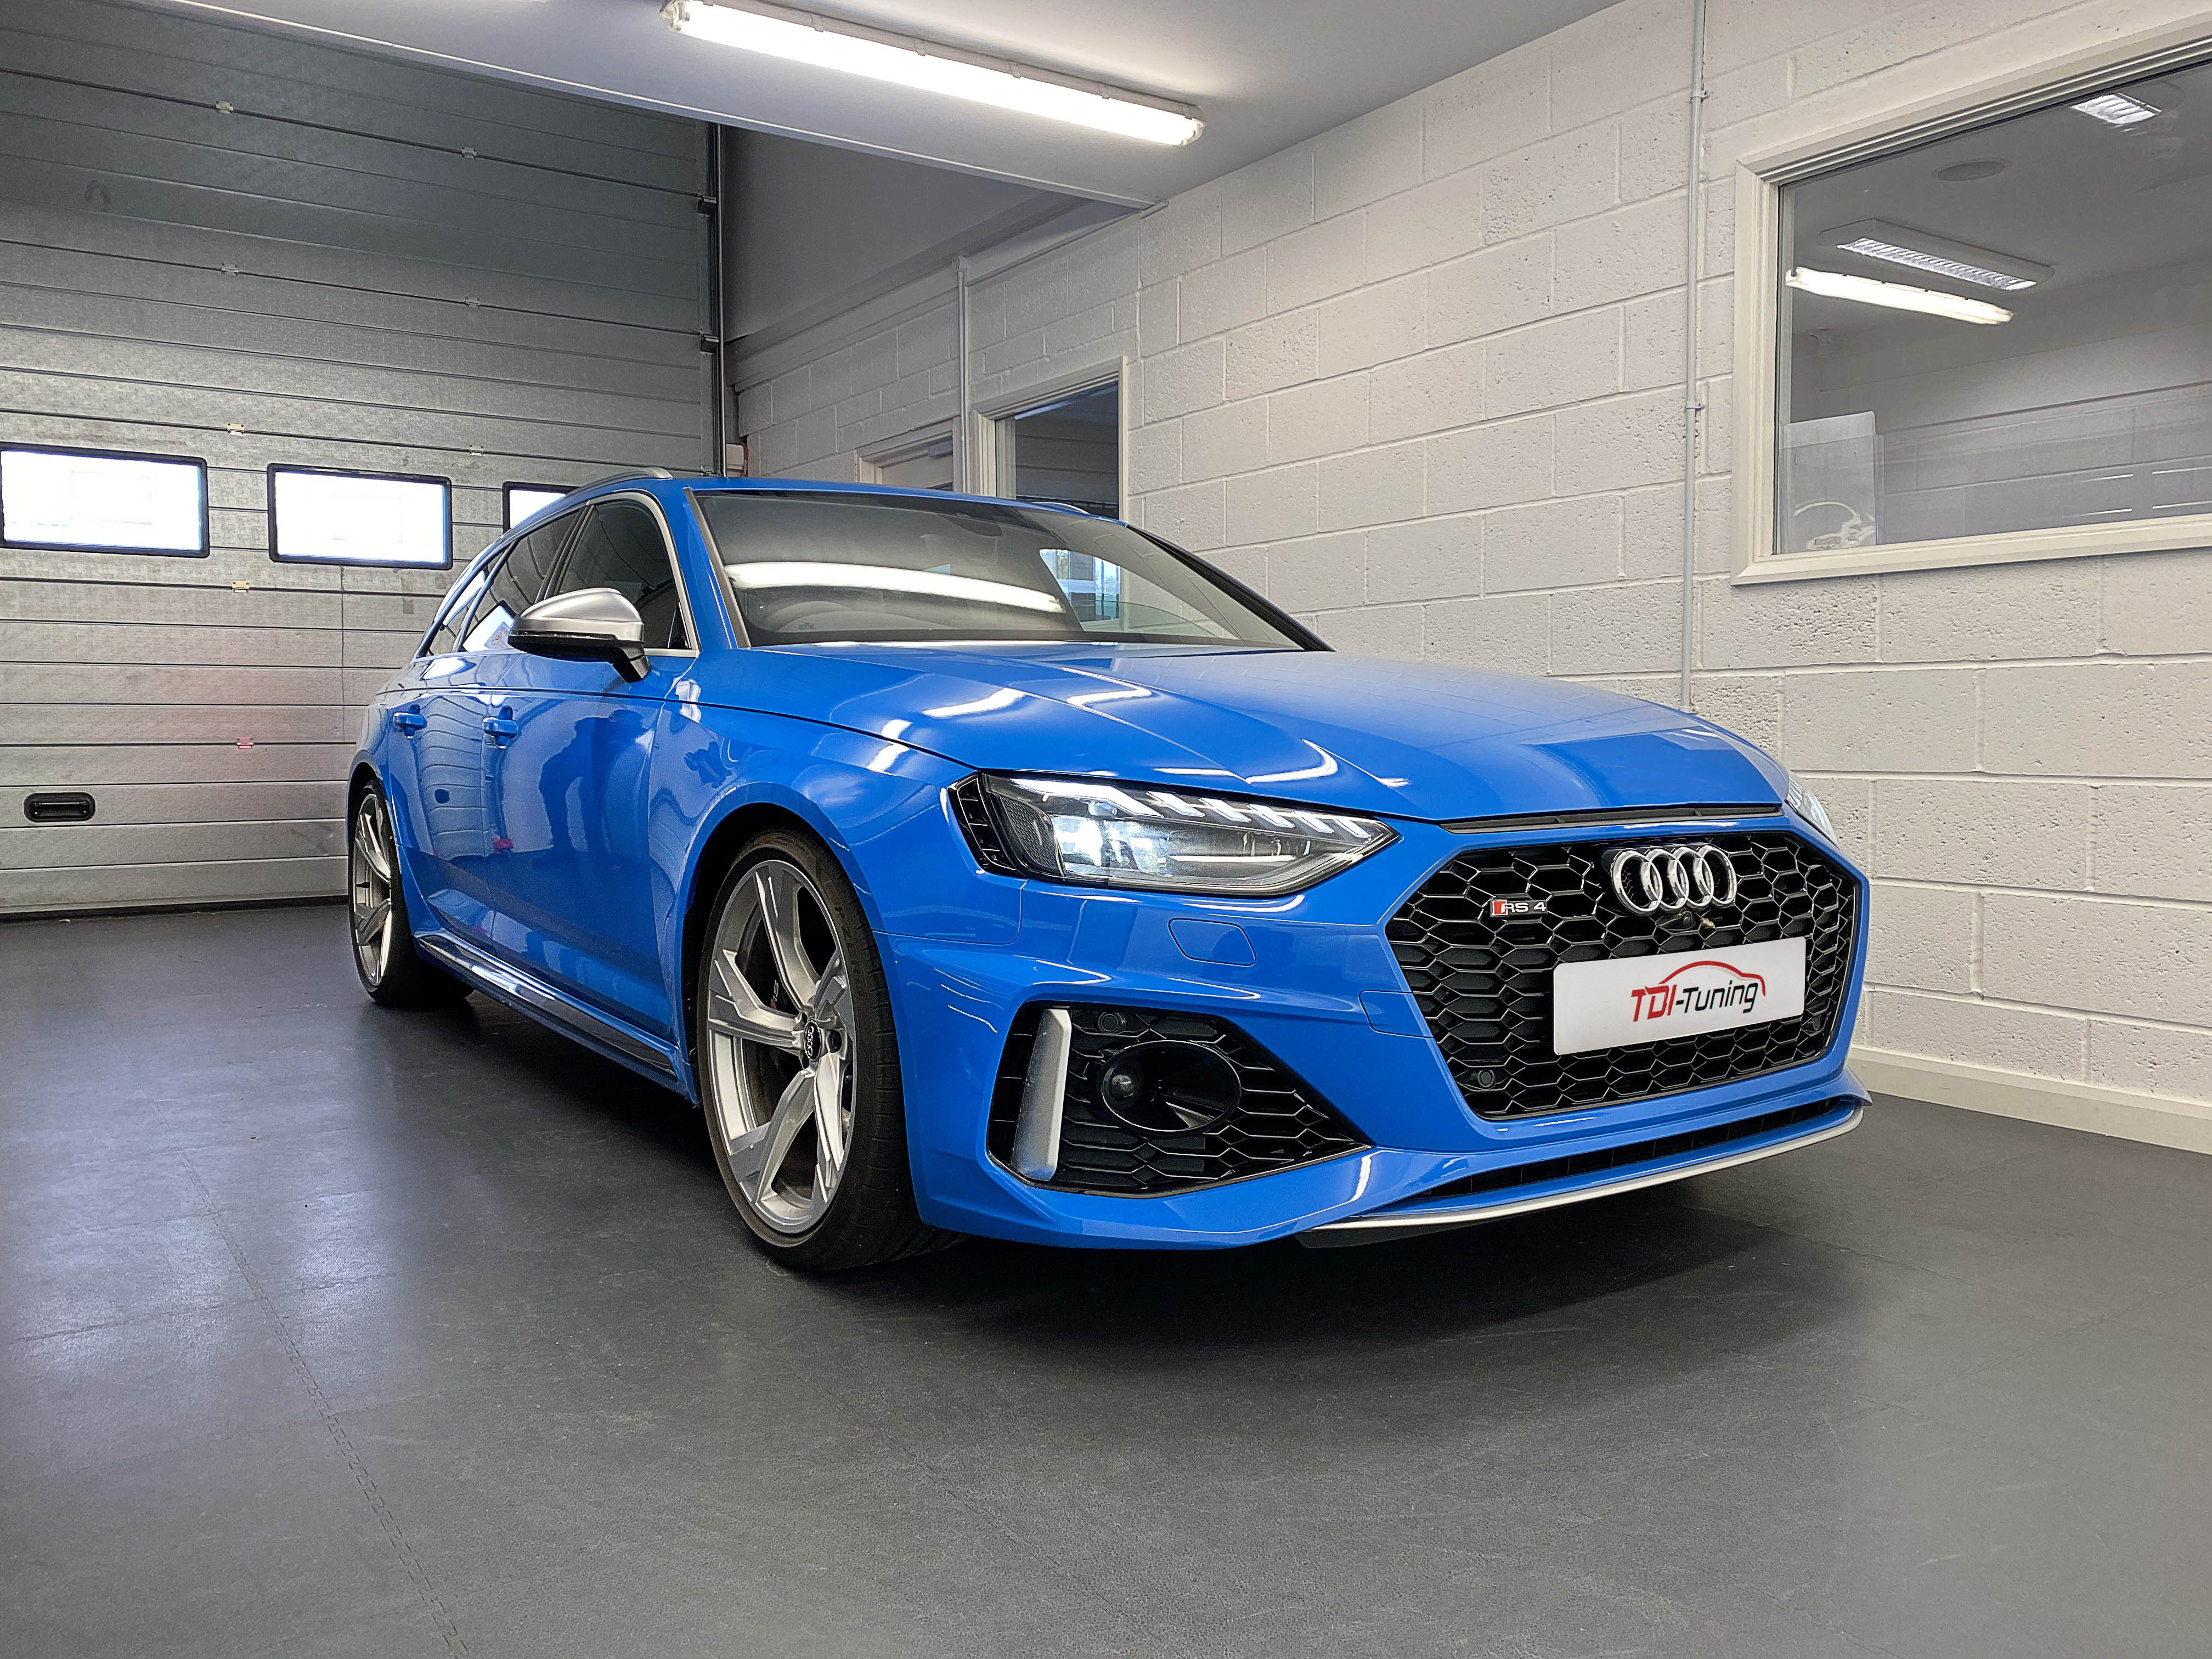 Audi chip tuning for Audi RS models